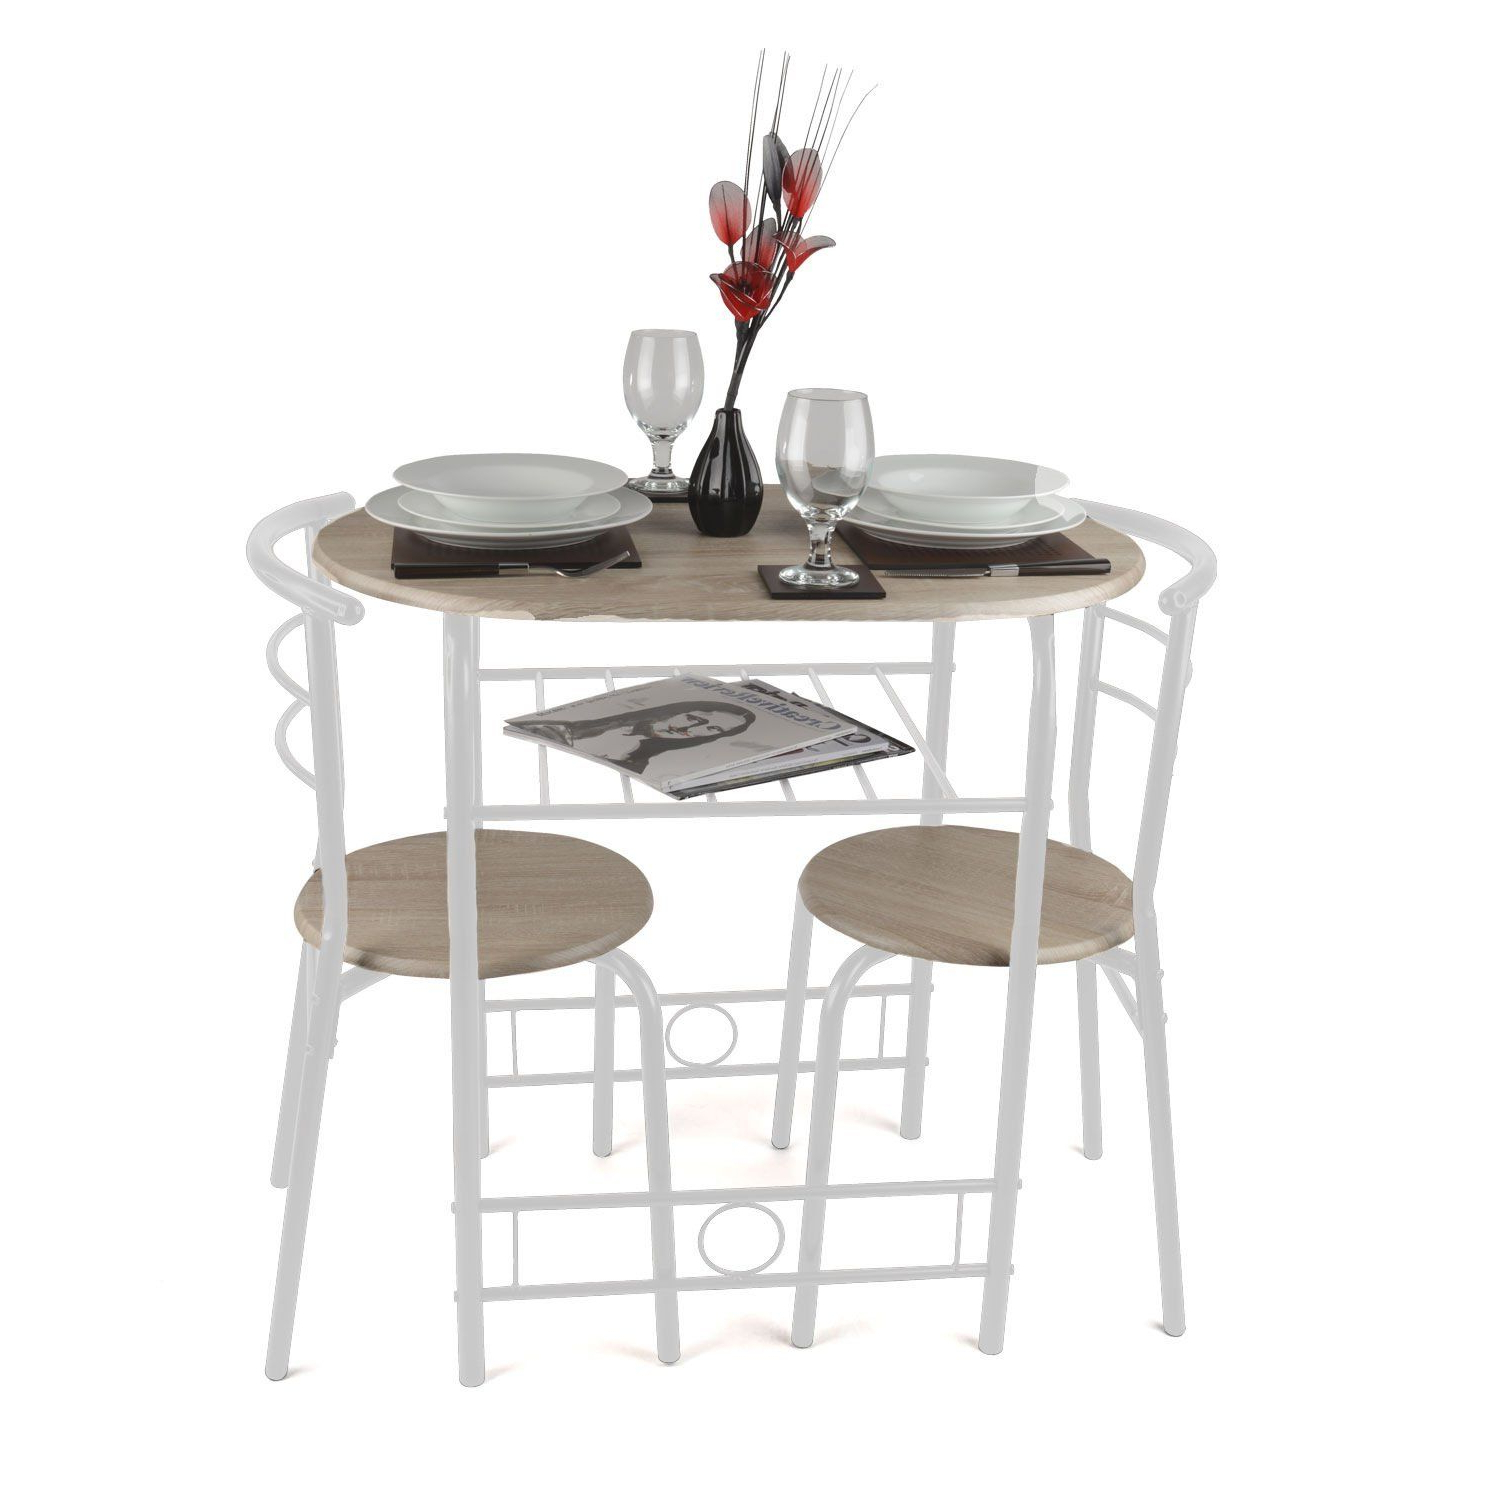 Christow 3 Piece Breakfast Dining Set White: Amazon.co (View 4 of 20)